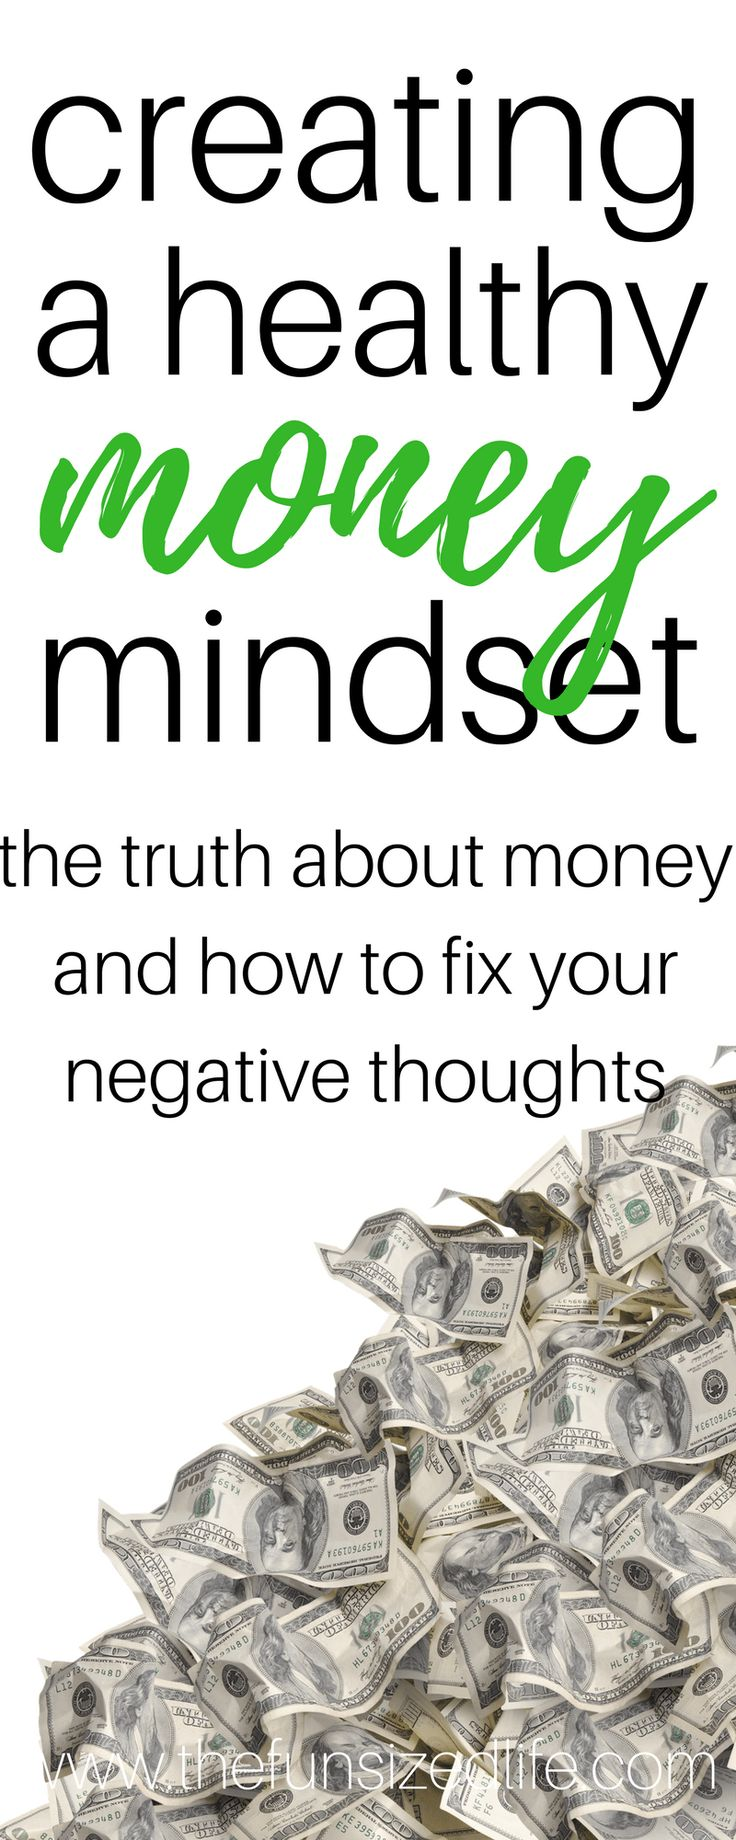 healthy money, wise money, money mindset, get out of debt, smart money, get smart with money, smart finances, wise spending, build a savings, how to save, the bible and money